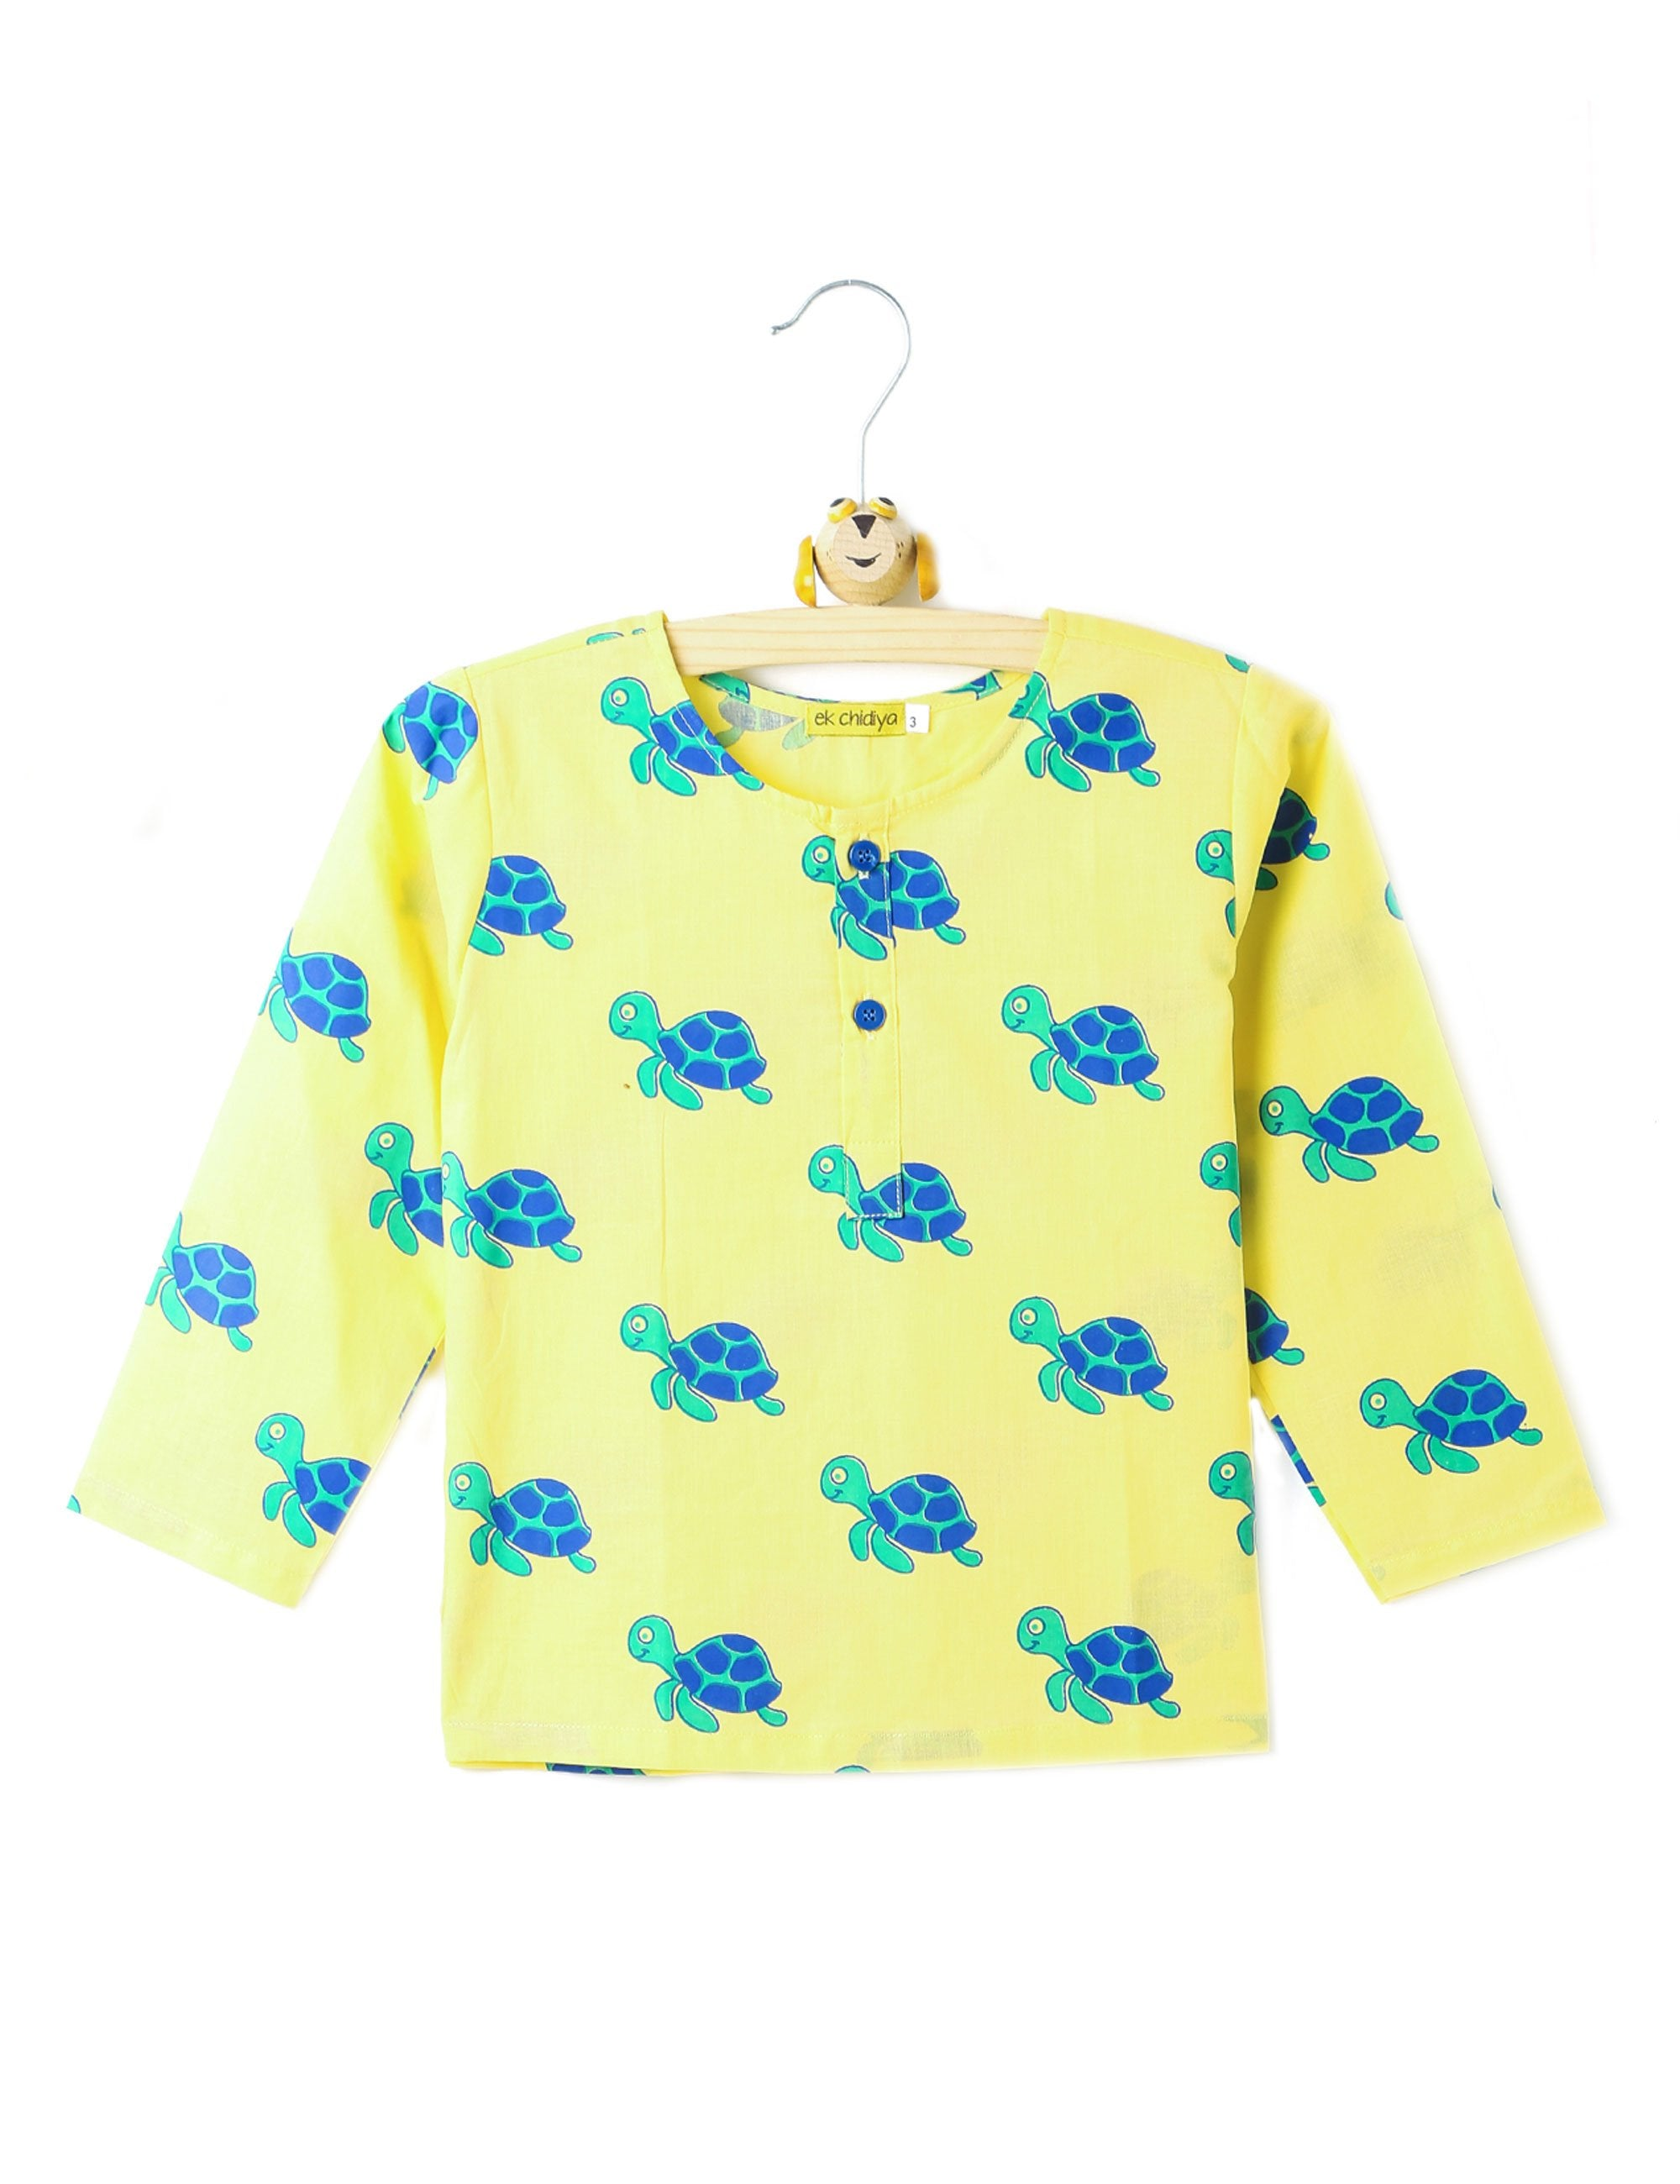 Turtle Printed Kurta in Yellow Colour for Boys & Girls